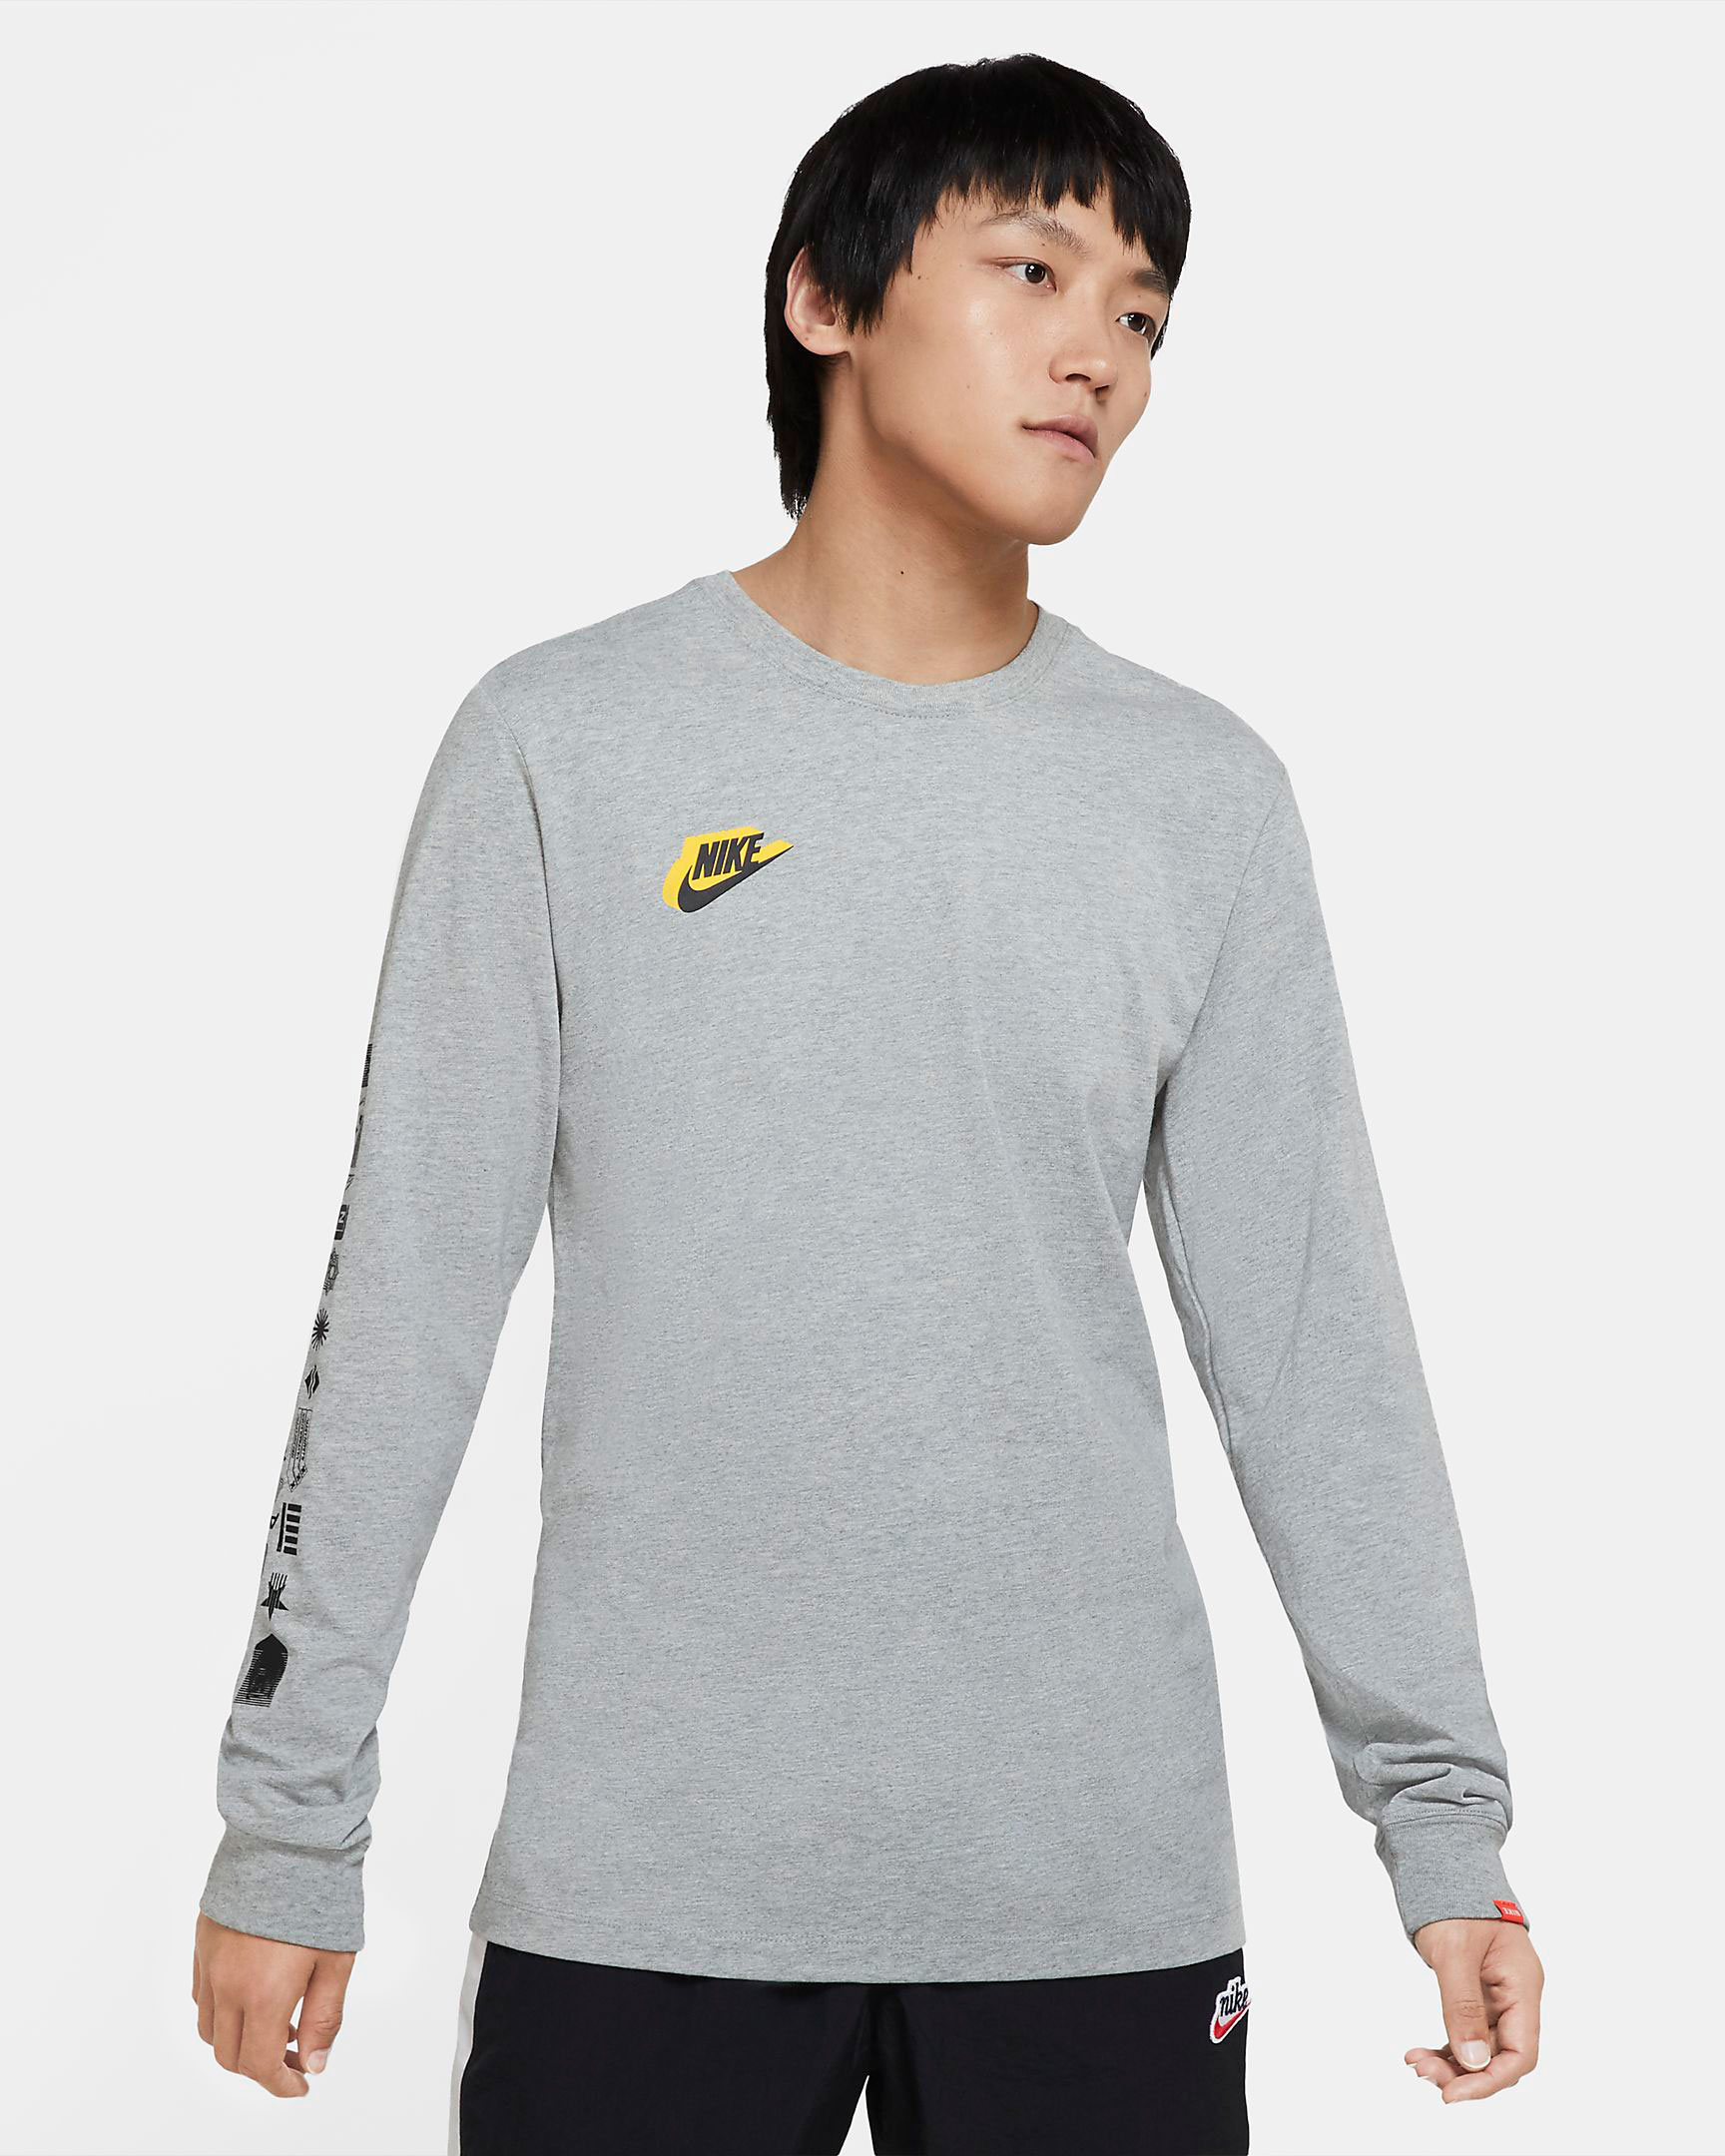 nike-worldwide-long-sleeve-shirt-grey-1